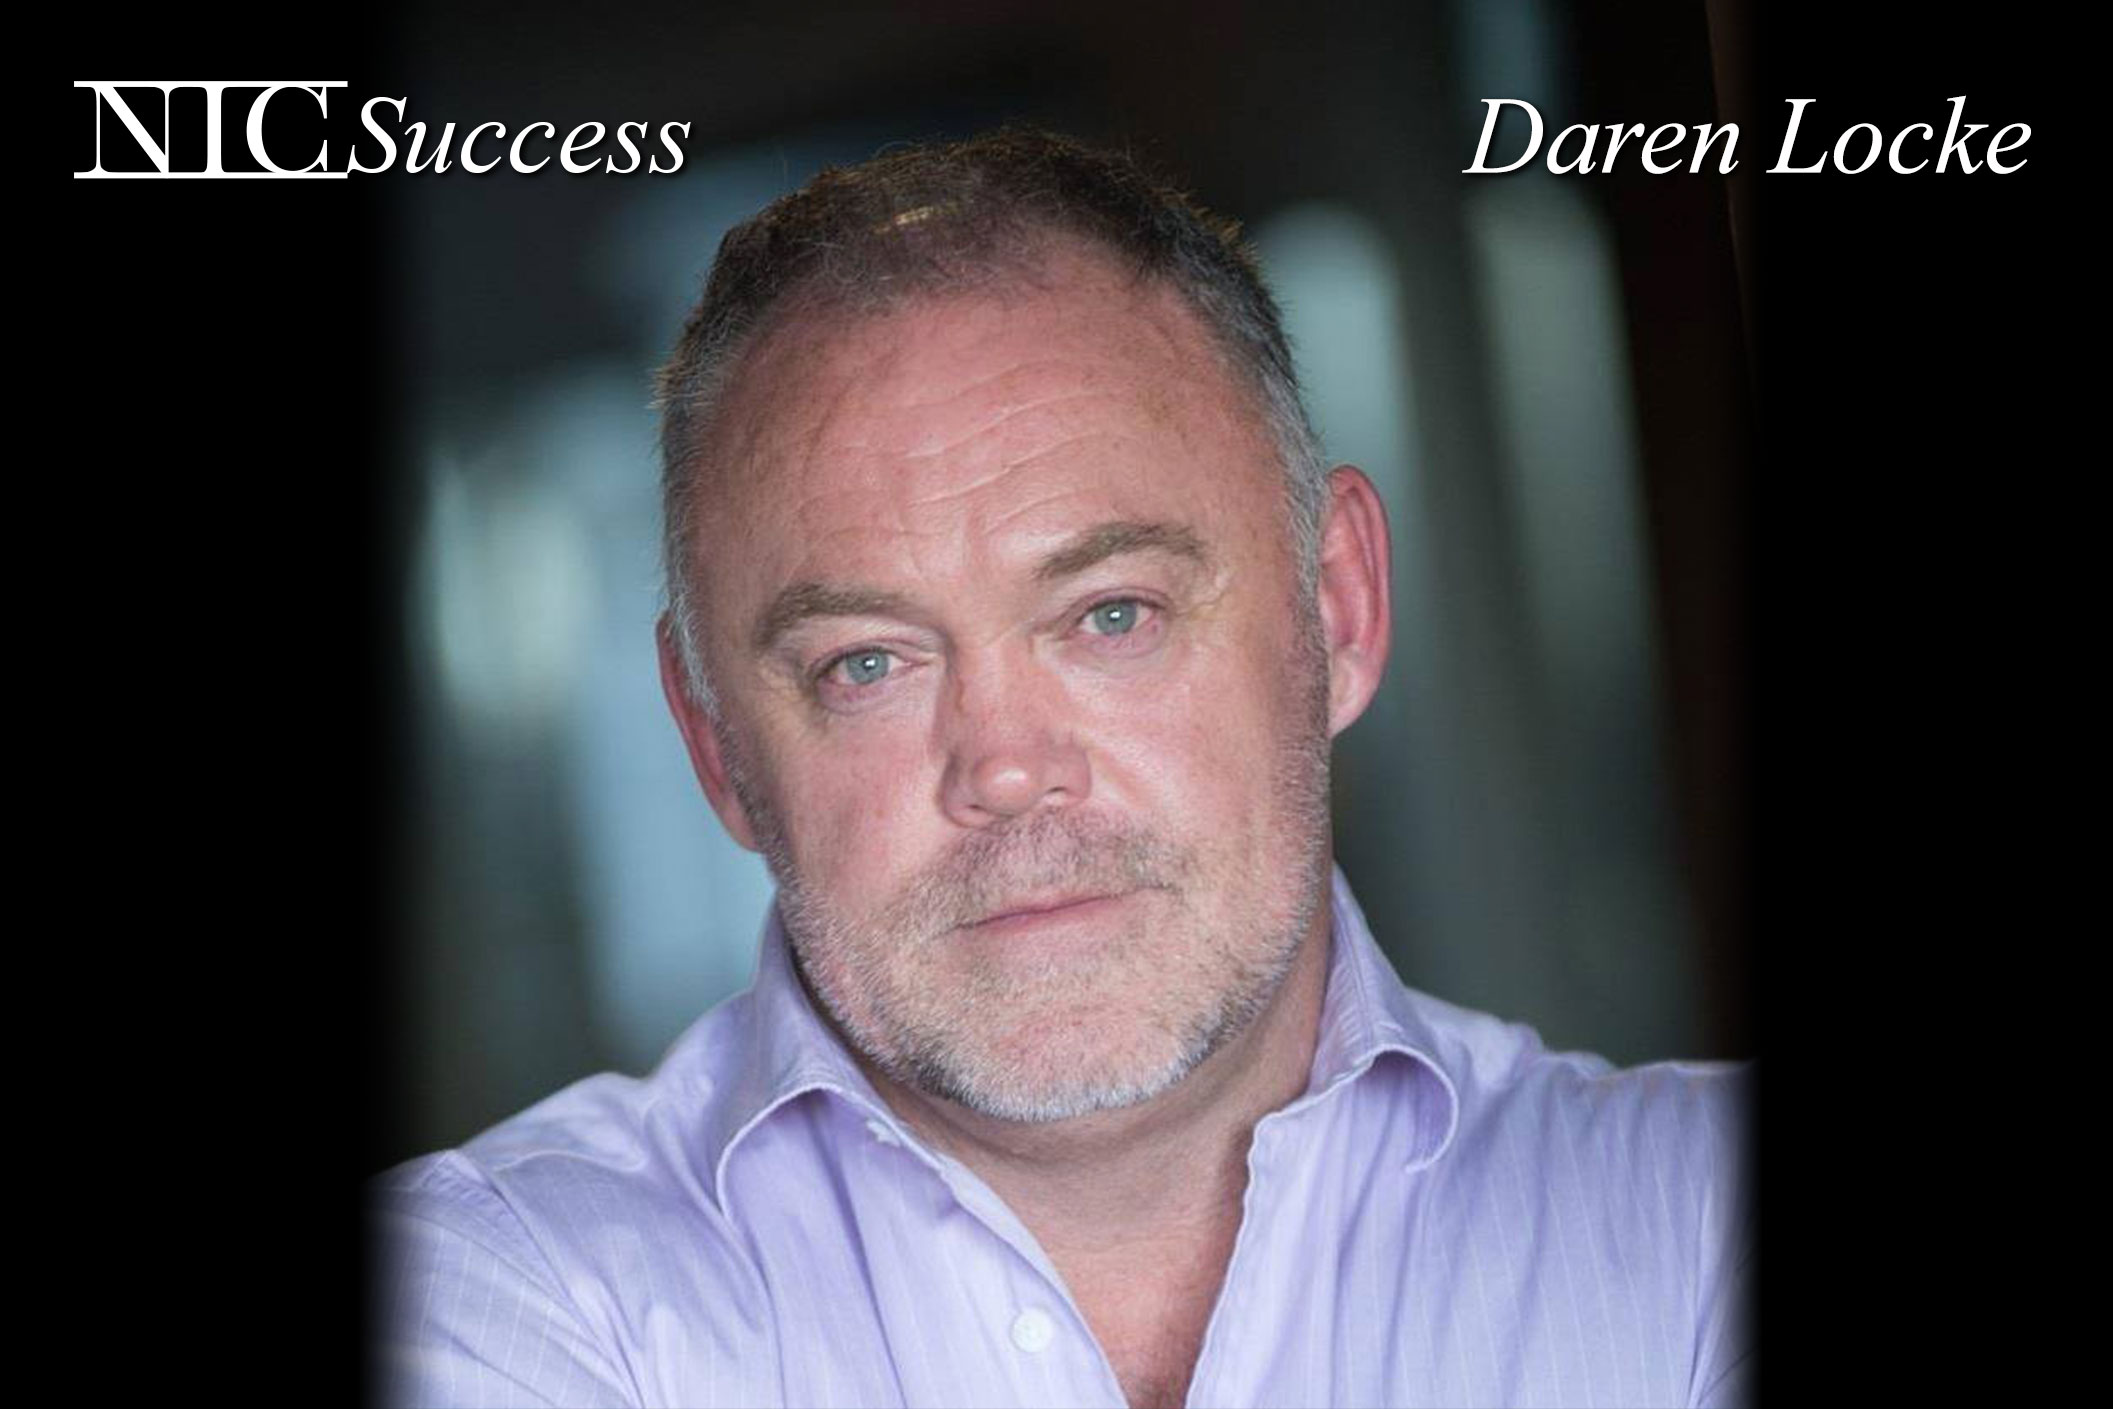 Daren Locke books high-paying commercial